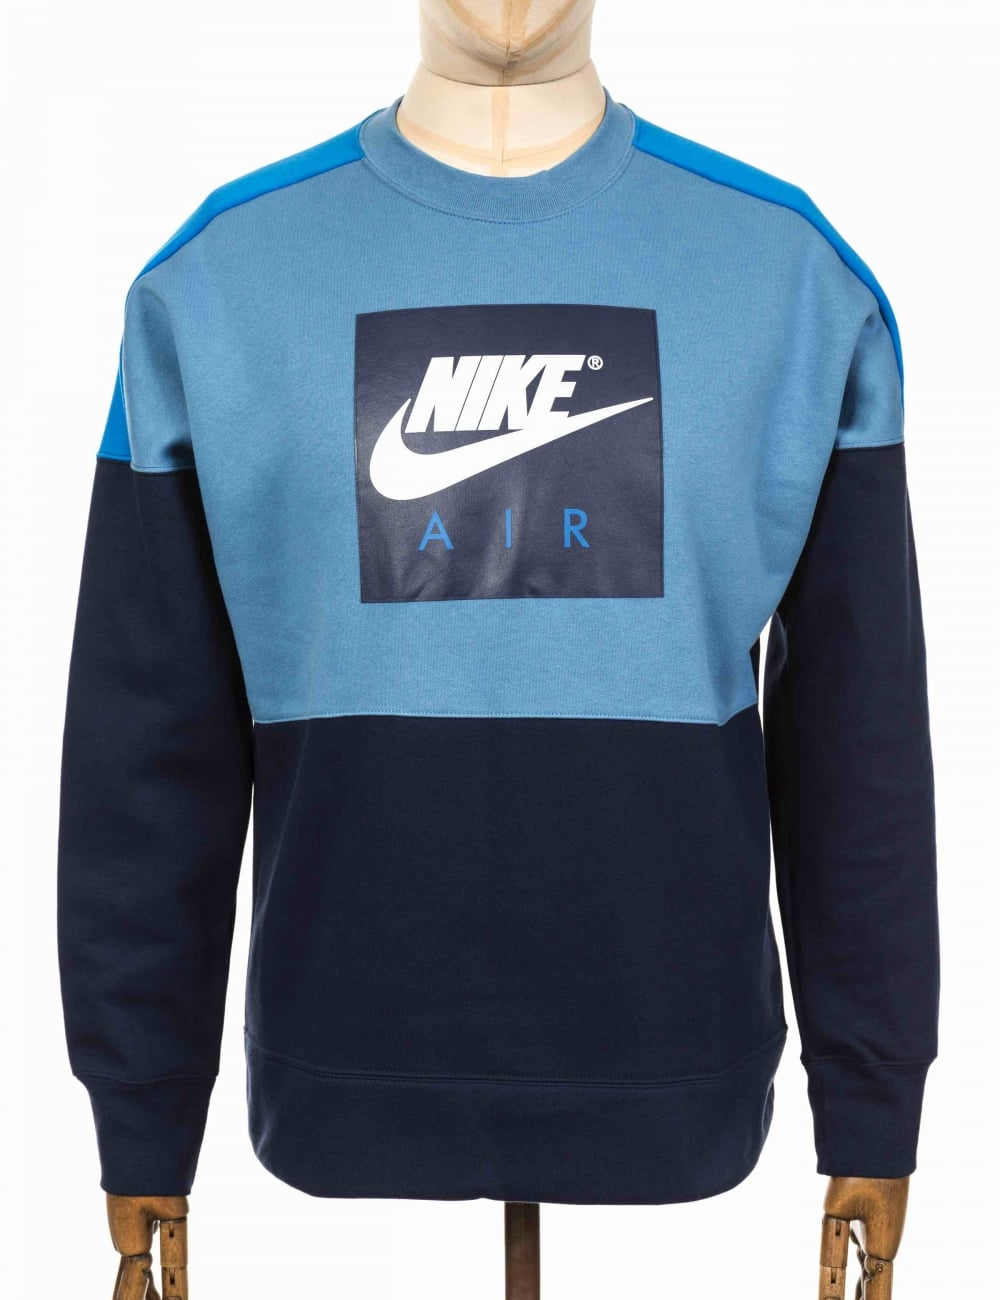 Nsw Storm Blueblue Sweatshirt Air Nebula DIWH29E